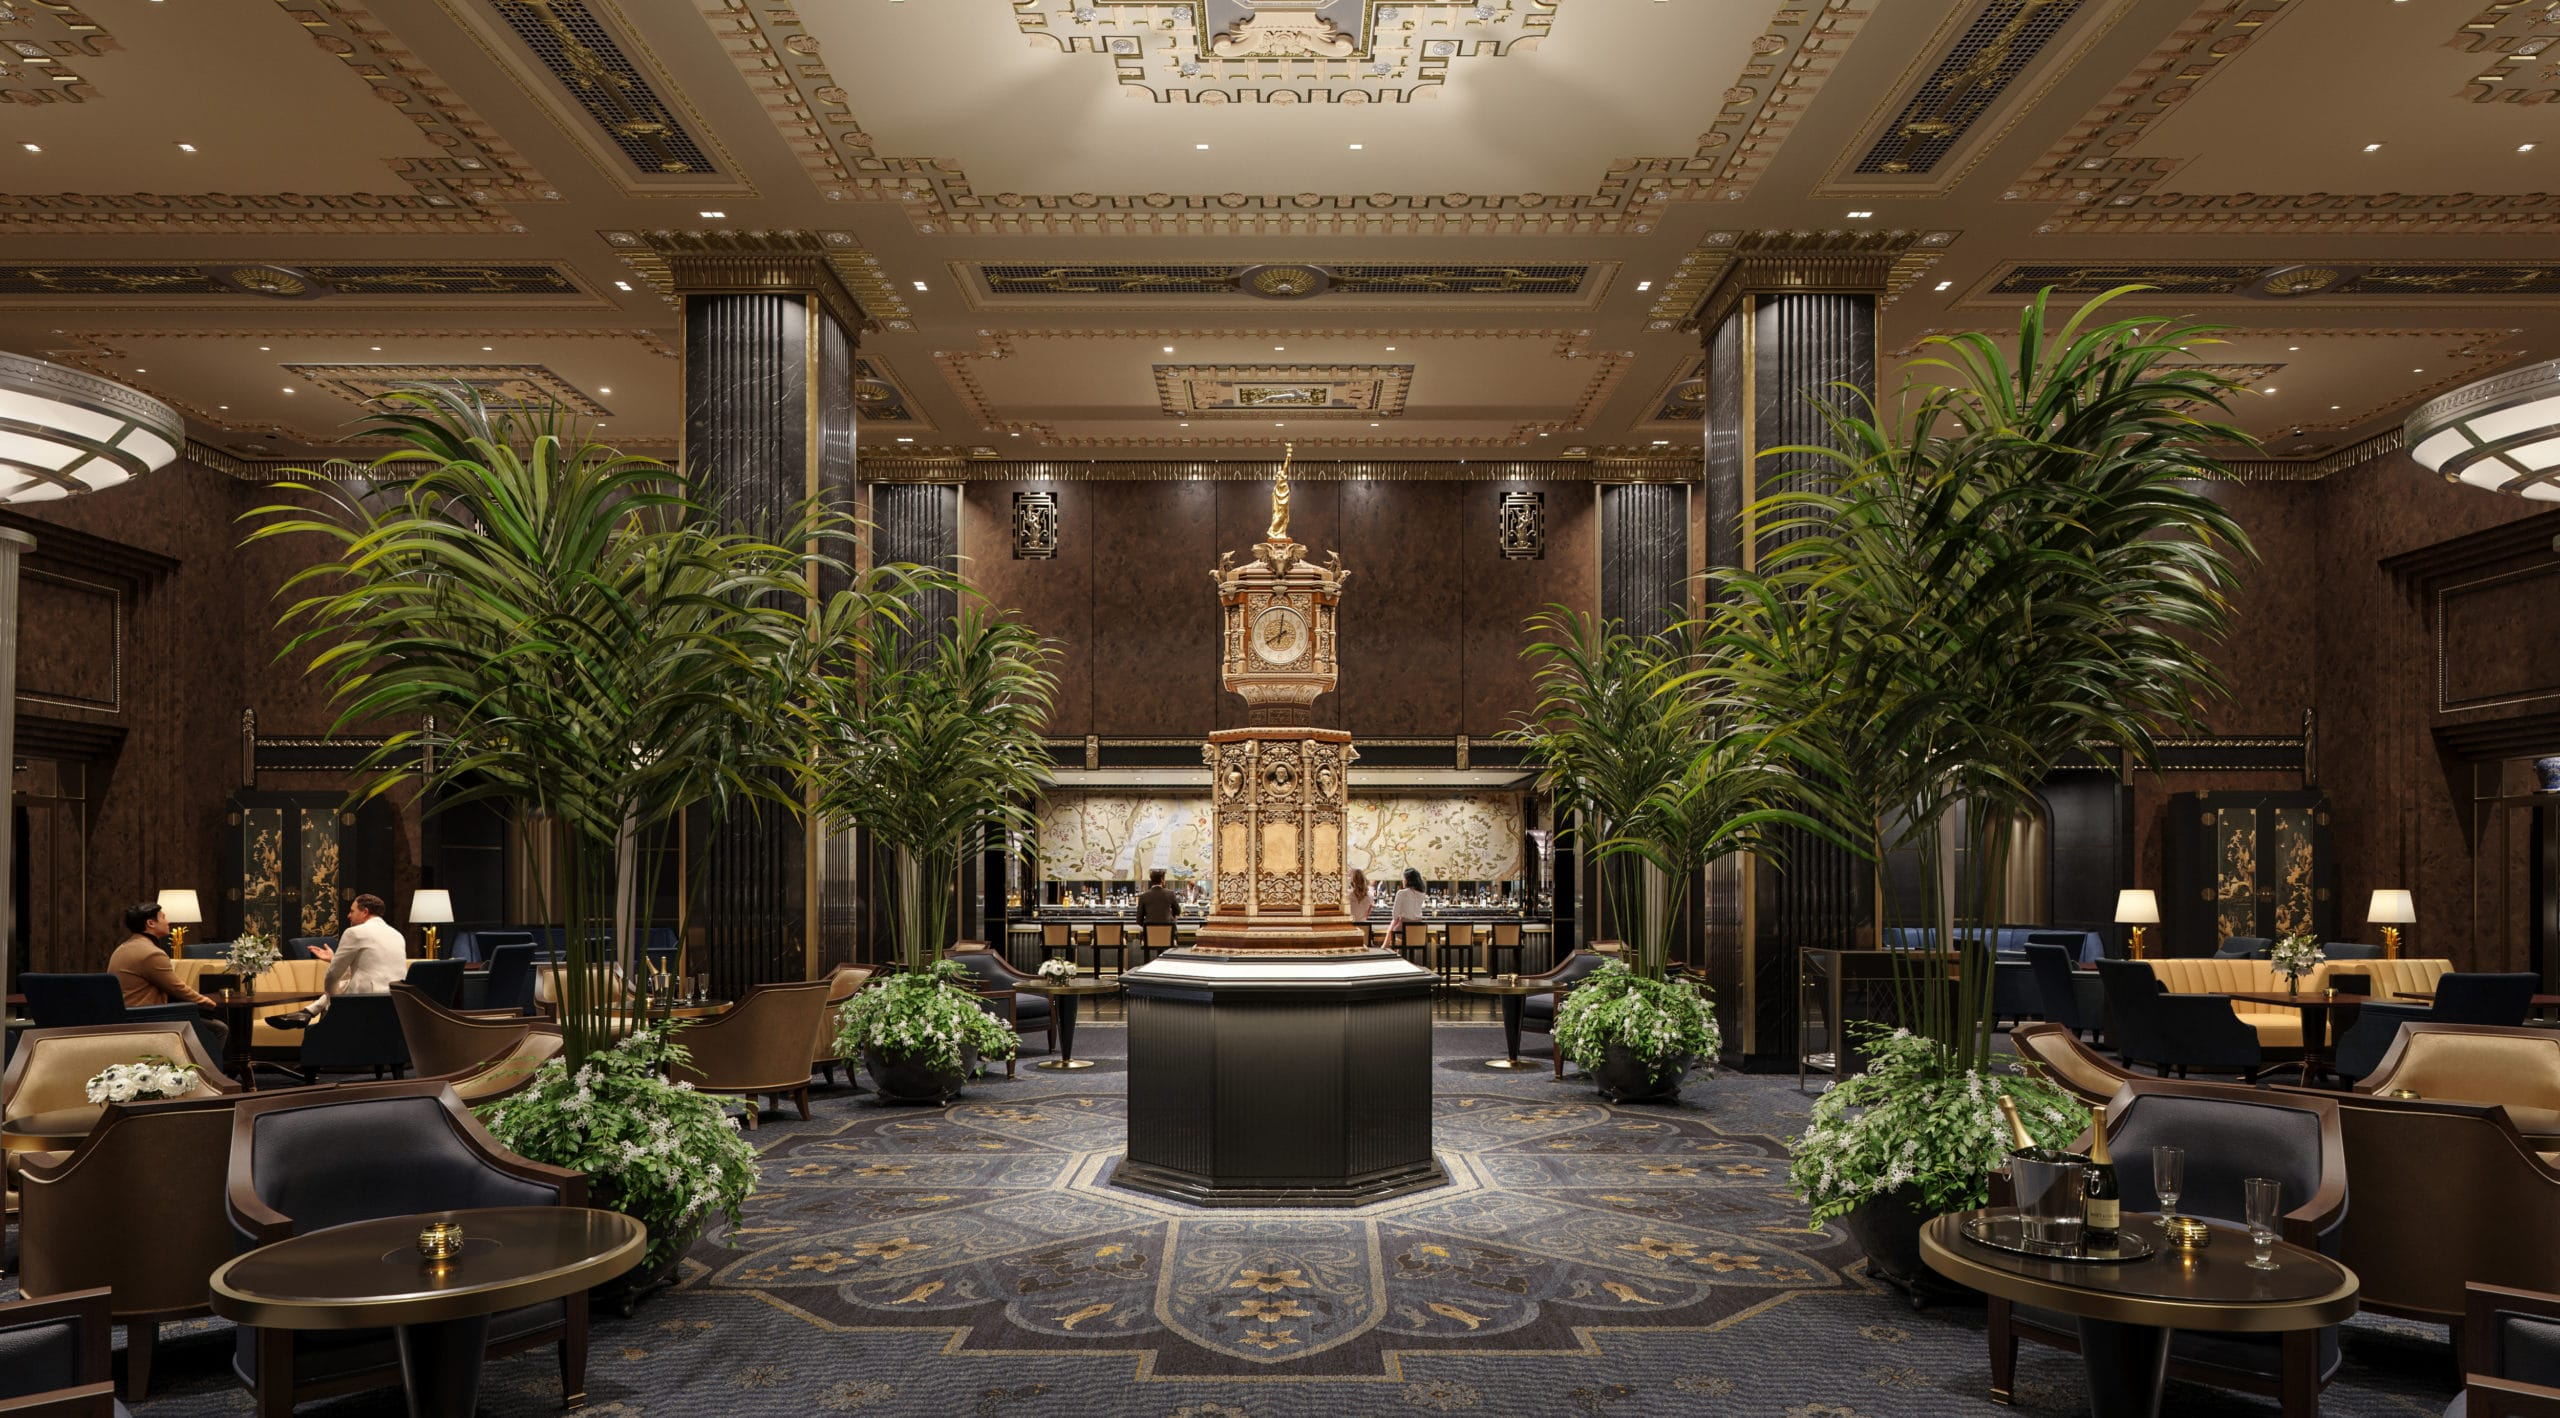 Rendering of reimagined clock in main lobby at the Waldorf-Astoria New York 5-star hotel.